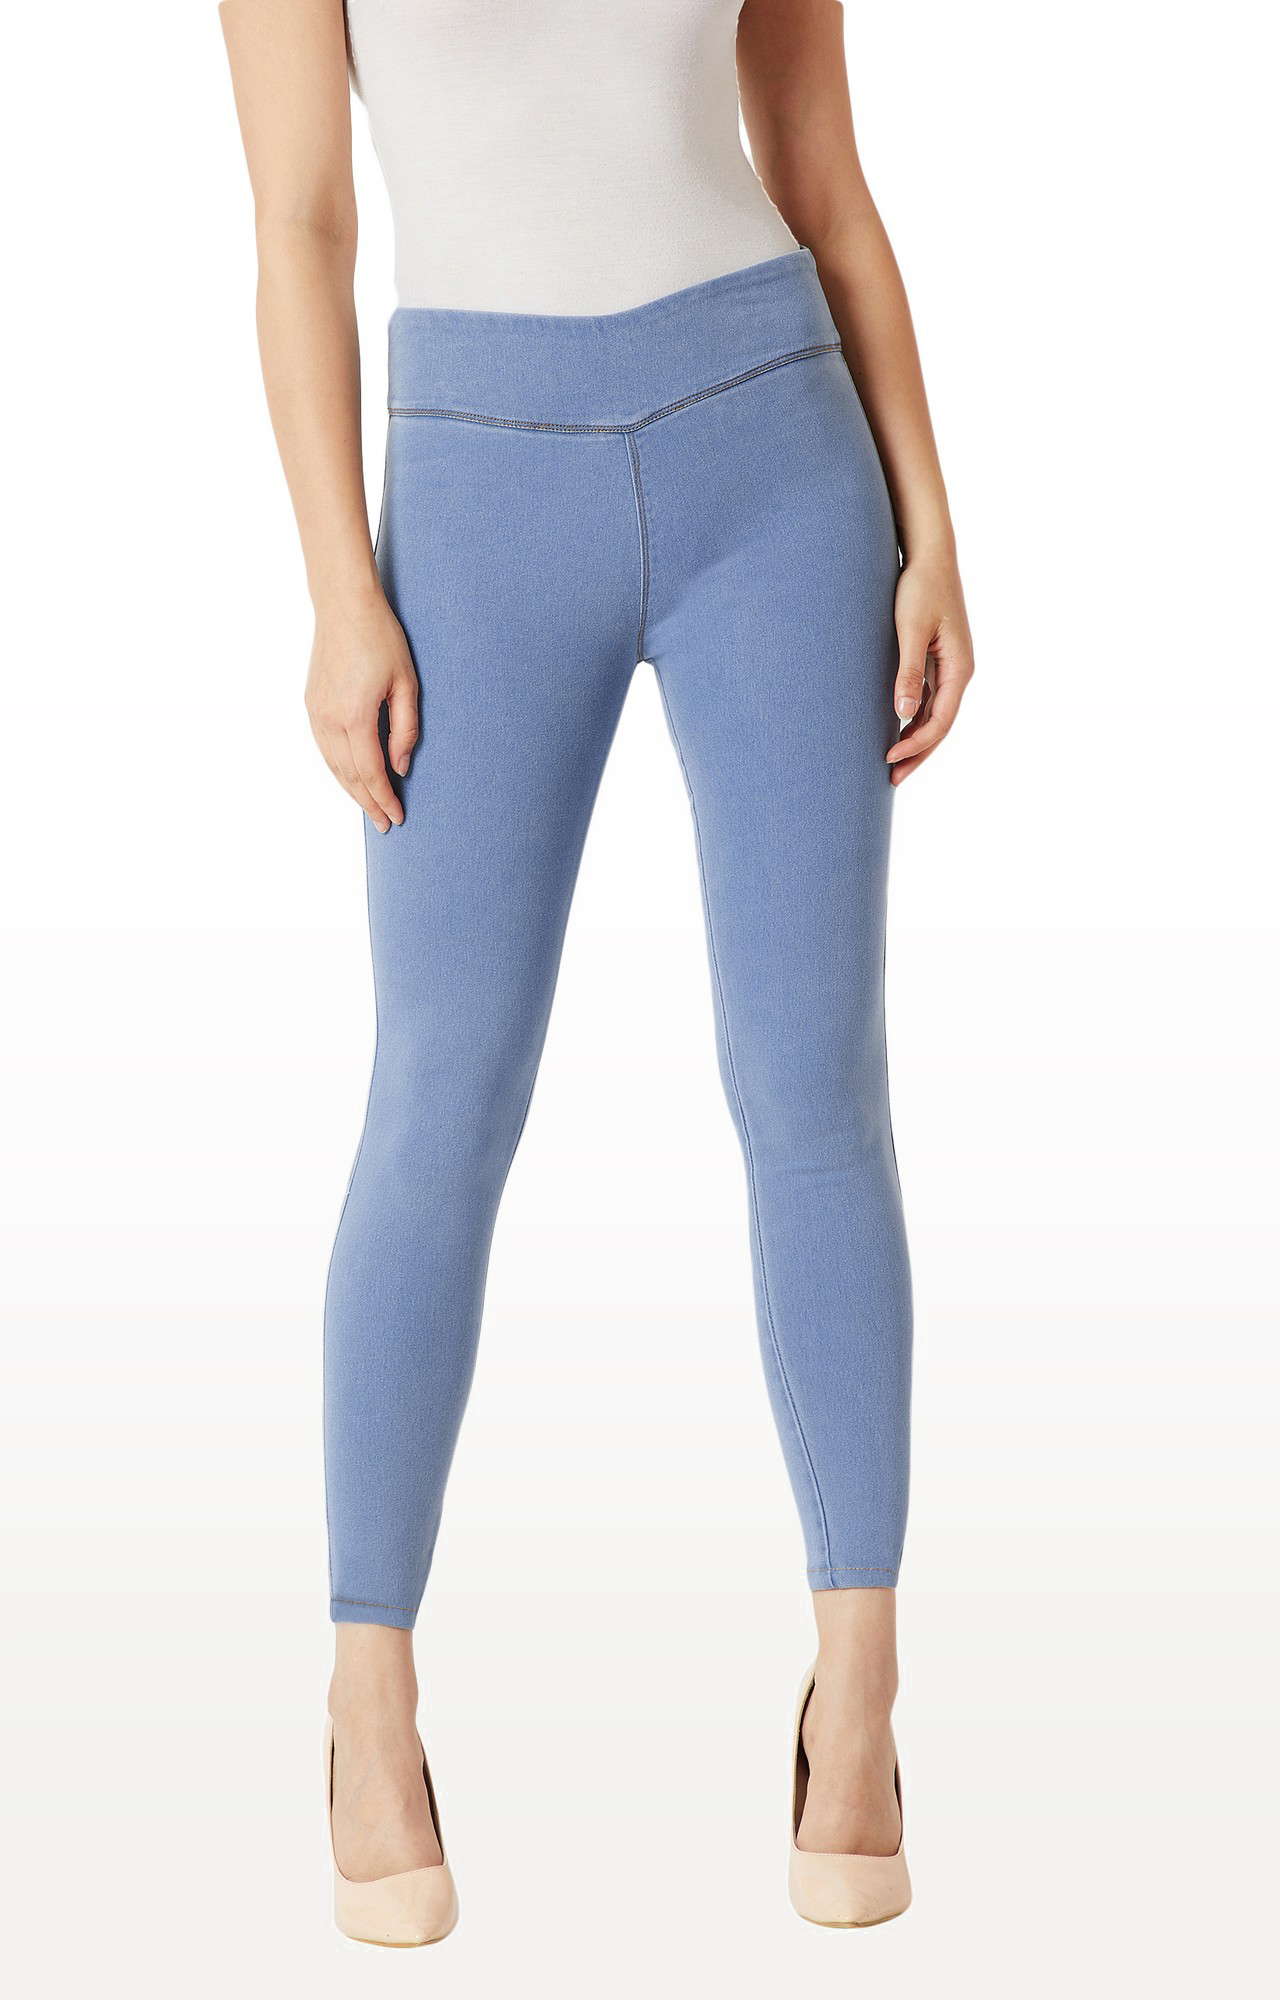 MISS CHASE   Light Blue Solid High Rise Clean Look Stretchable Denim Jeggings